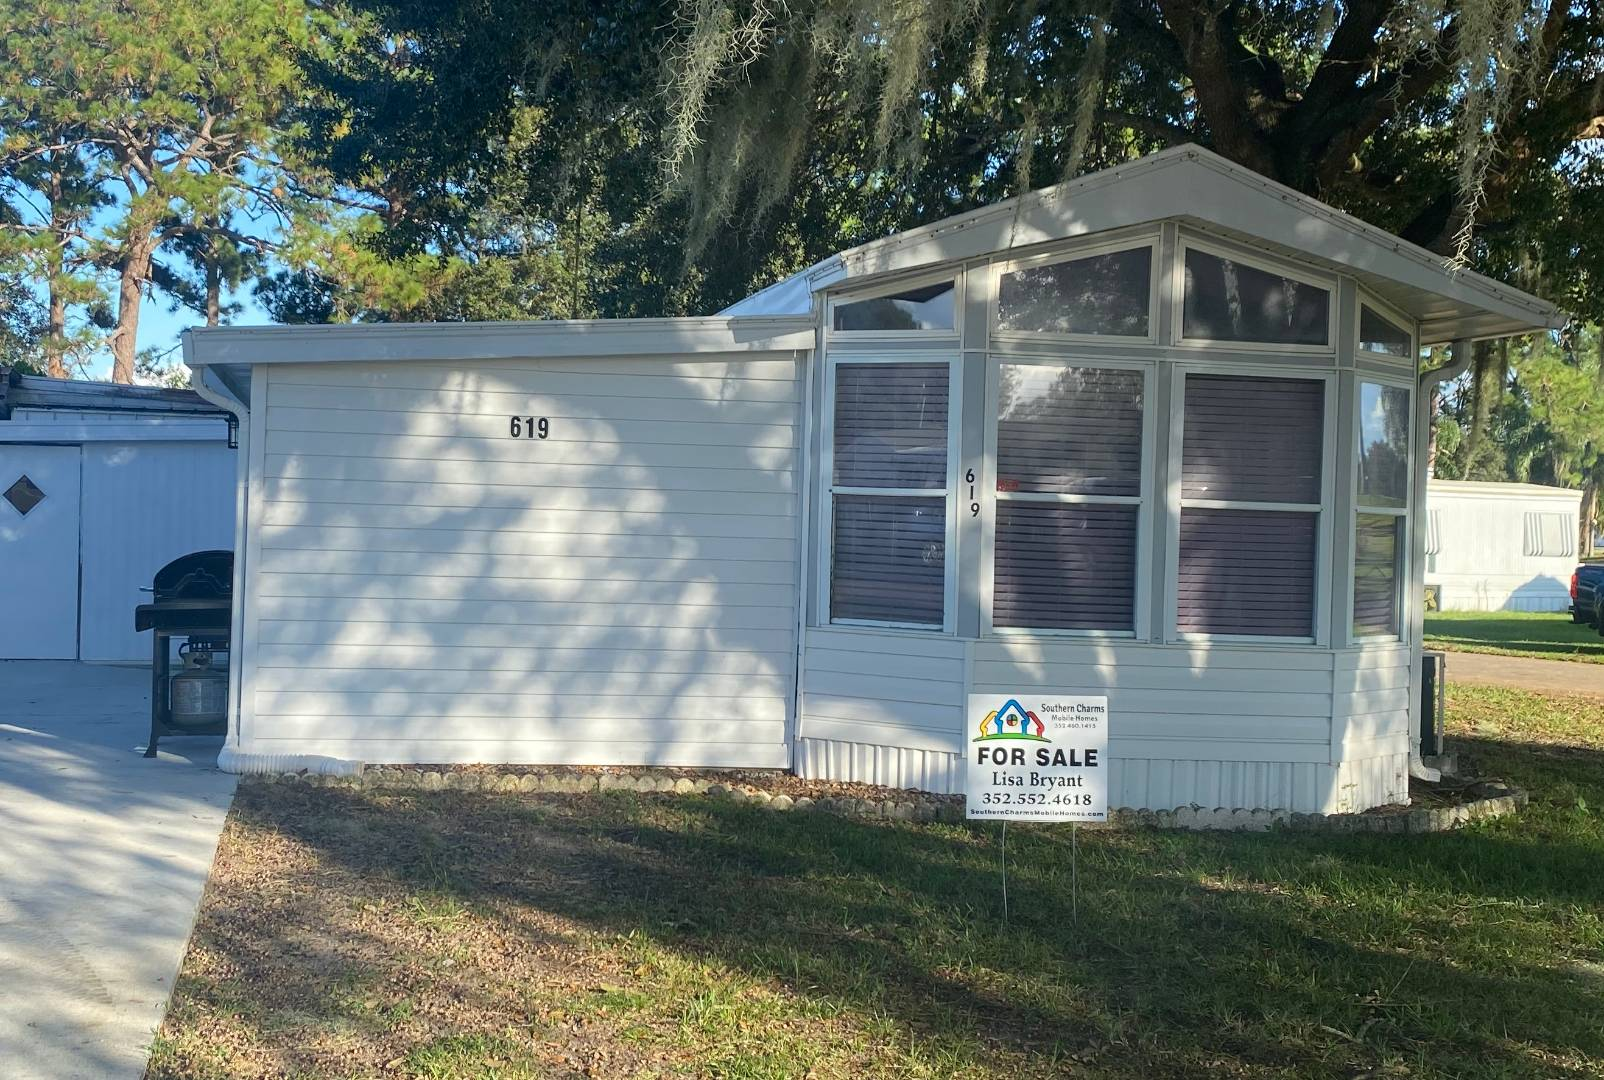 20005 US HWY 27, #619, CLERMONT, Florida 34715, 1 Bedroom Bedrooms, ,1 BathroomBathrooms,Residential,For Sale,20005 US HWY 27, #619,10954199